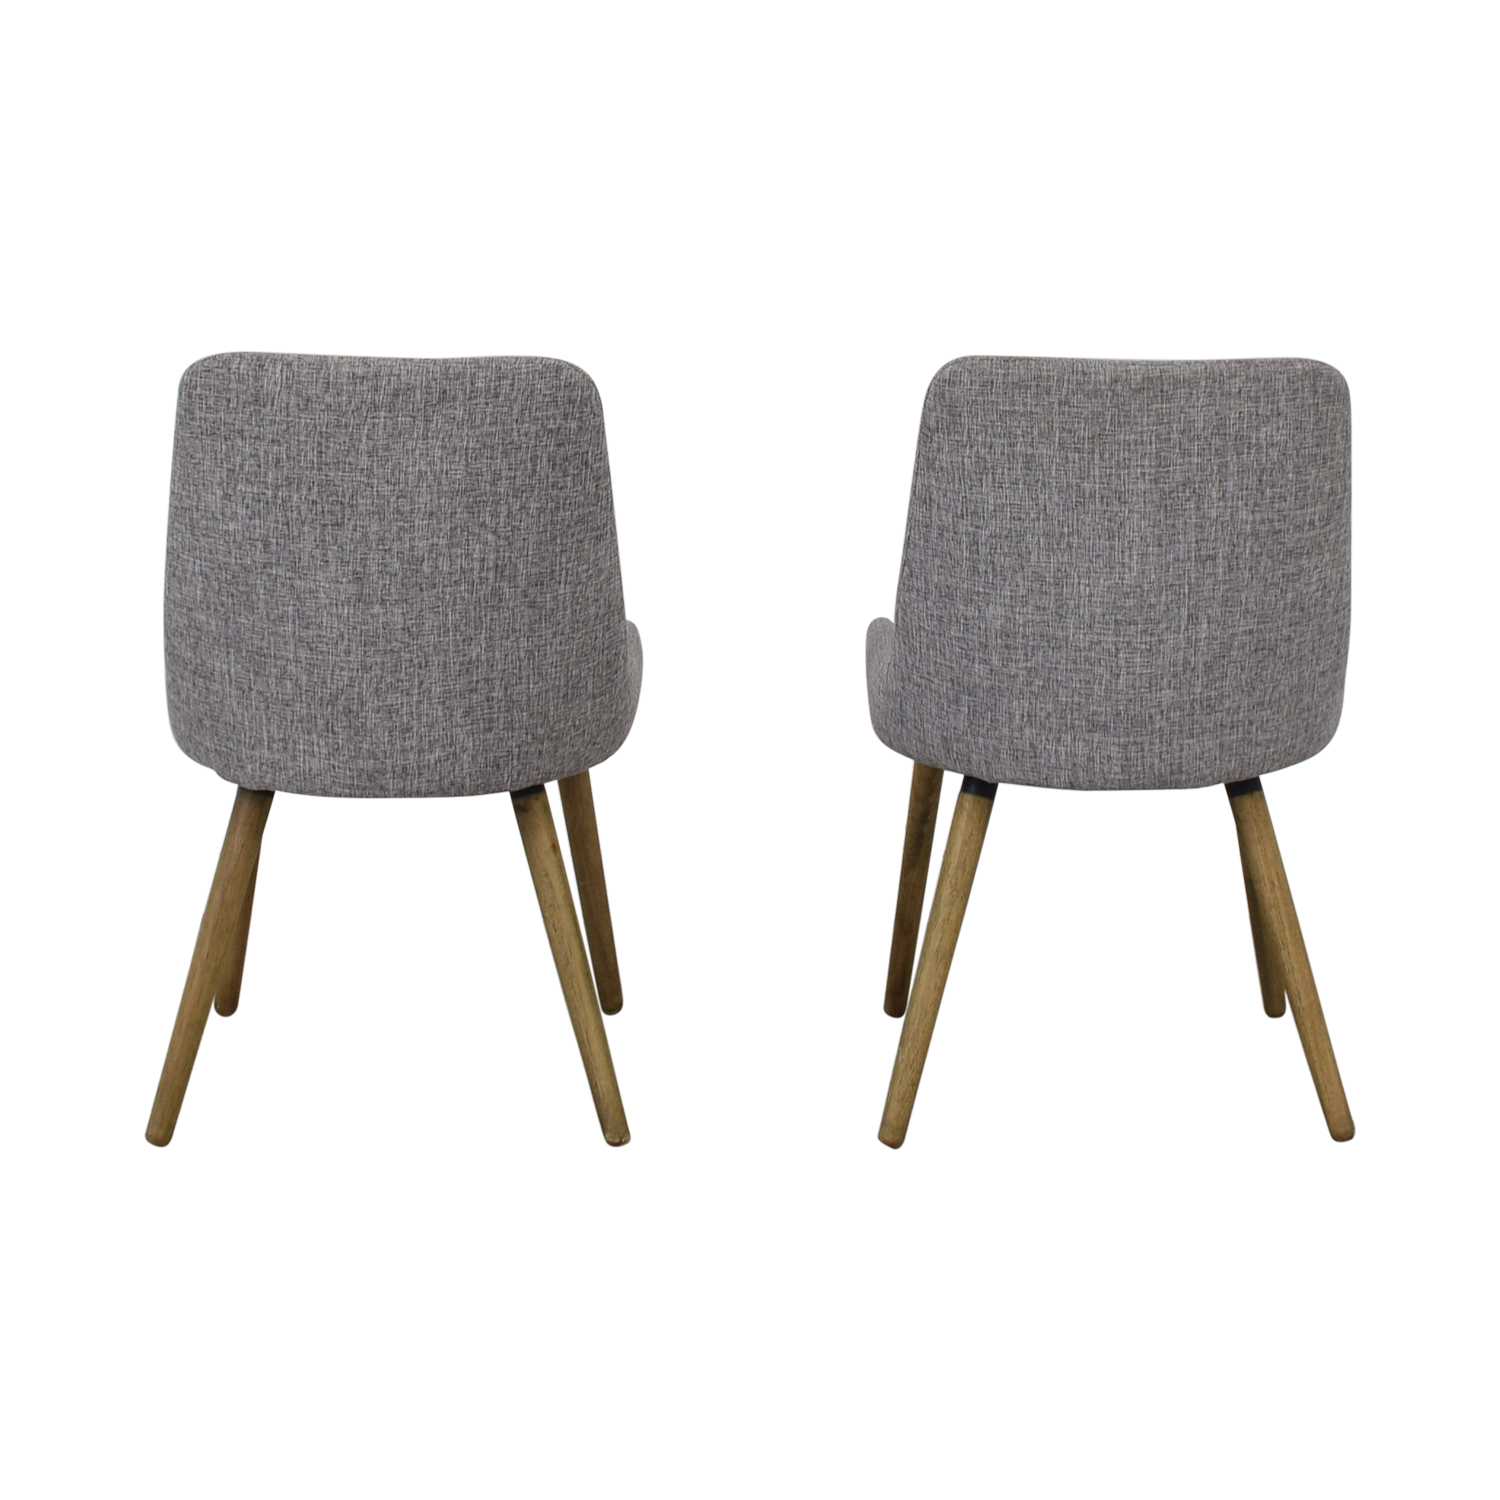 West Elm West Elm Mid-Century Upholstered Dining Chairs second hand